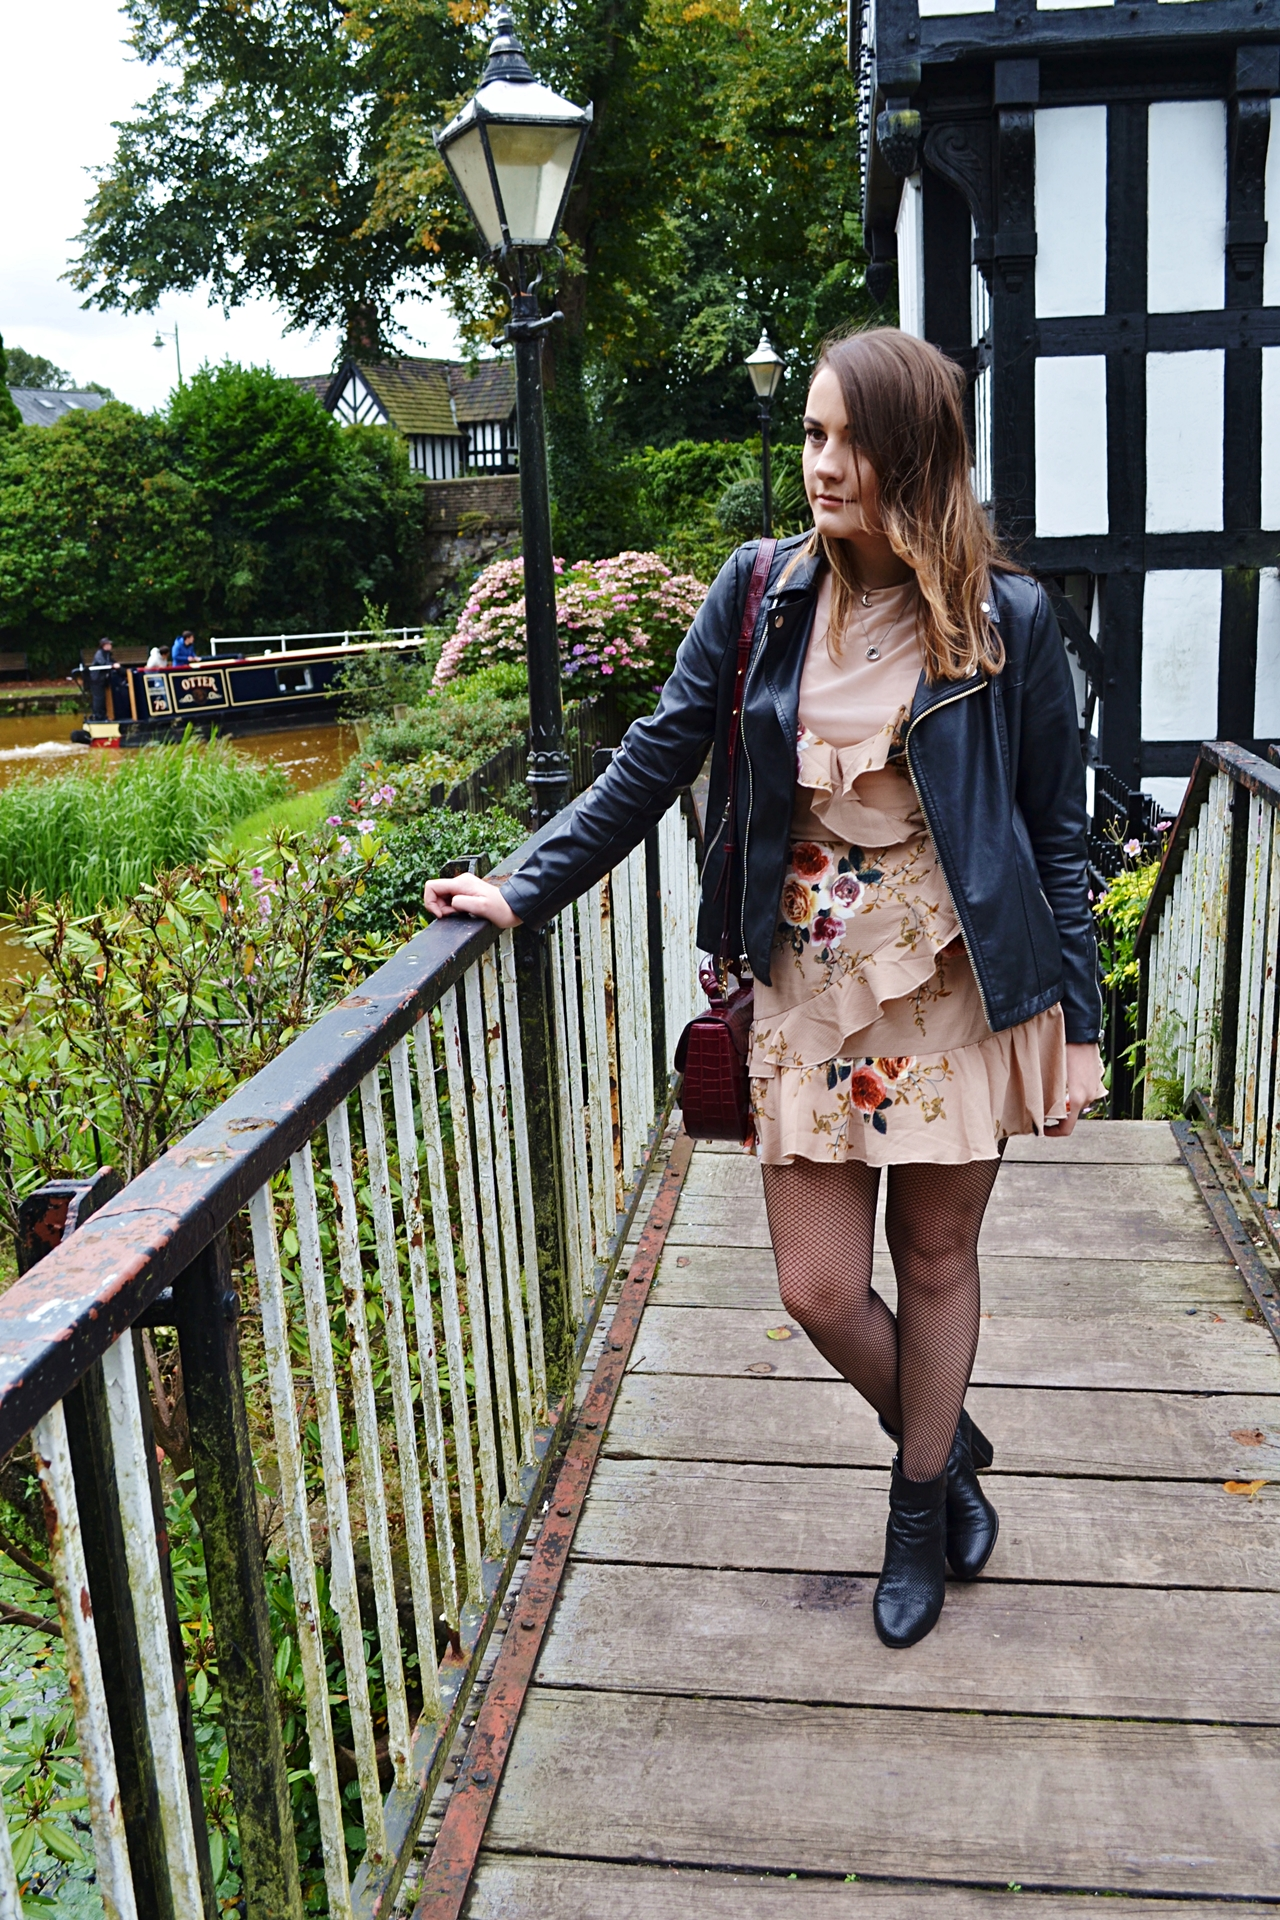 worsley village photoshoot fashion styleetc style etc